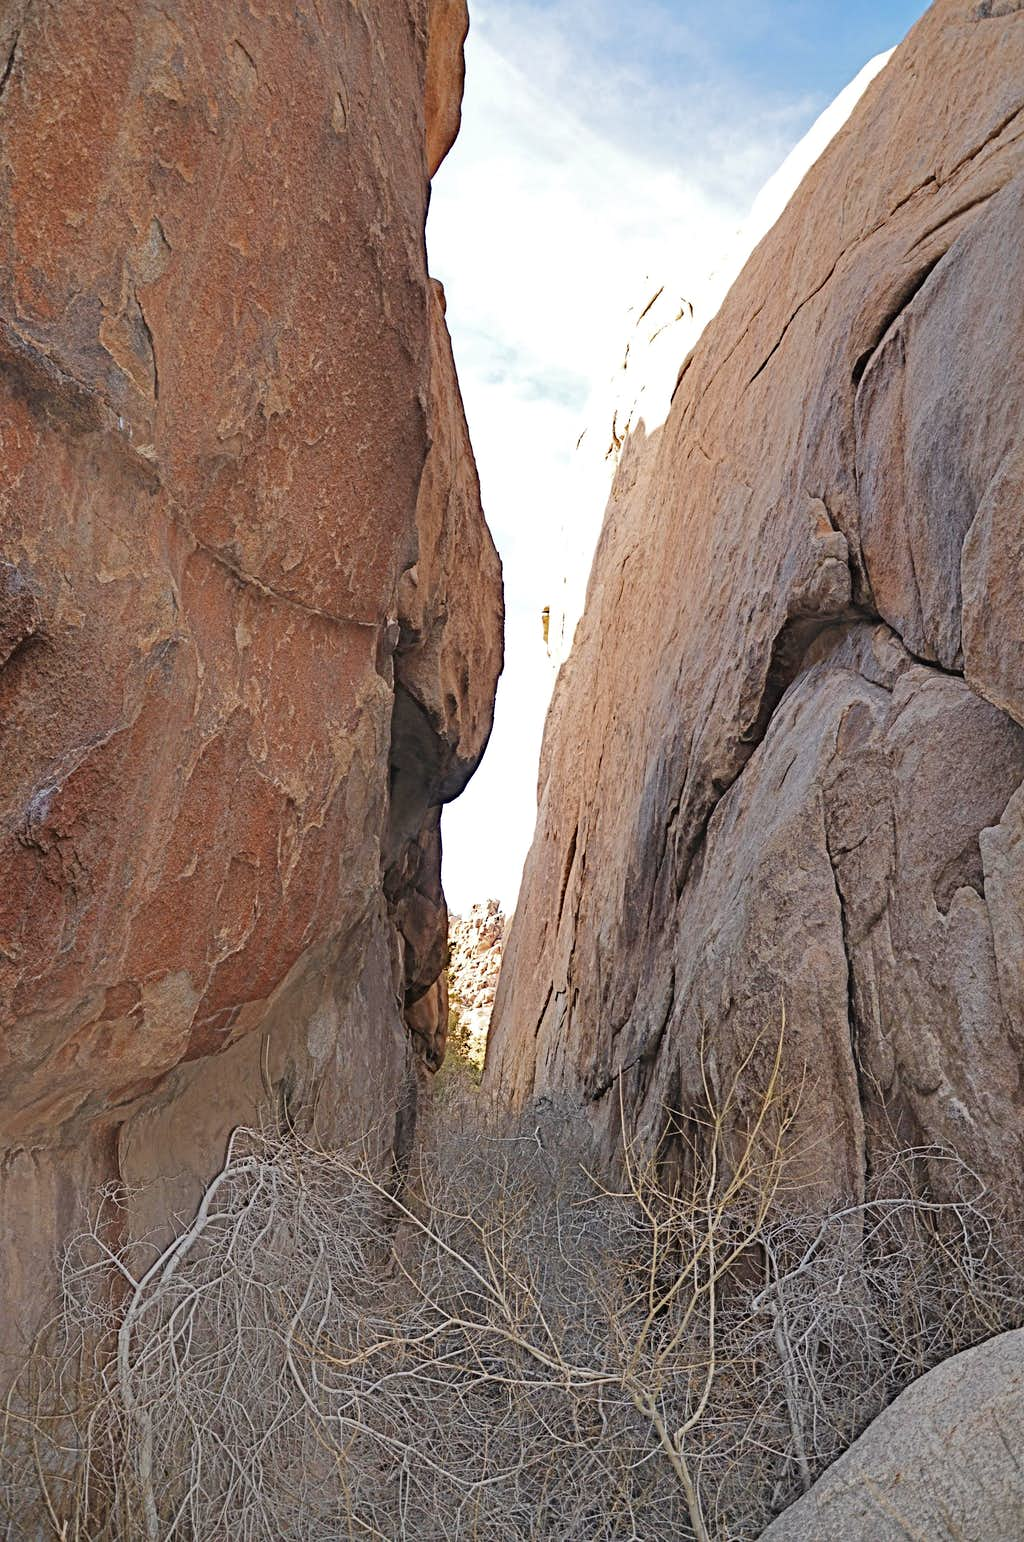 Narrow gully with Hidden Rock on the left